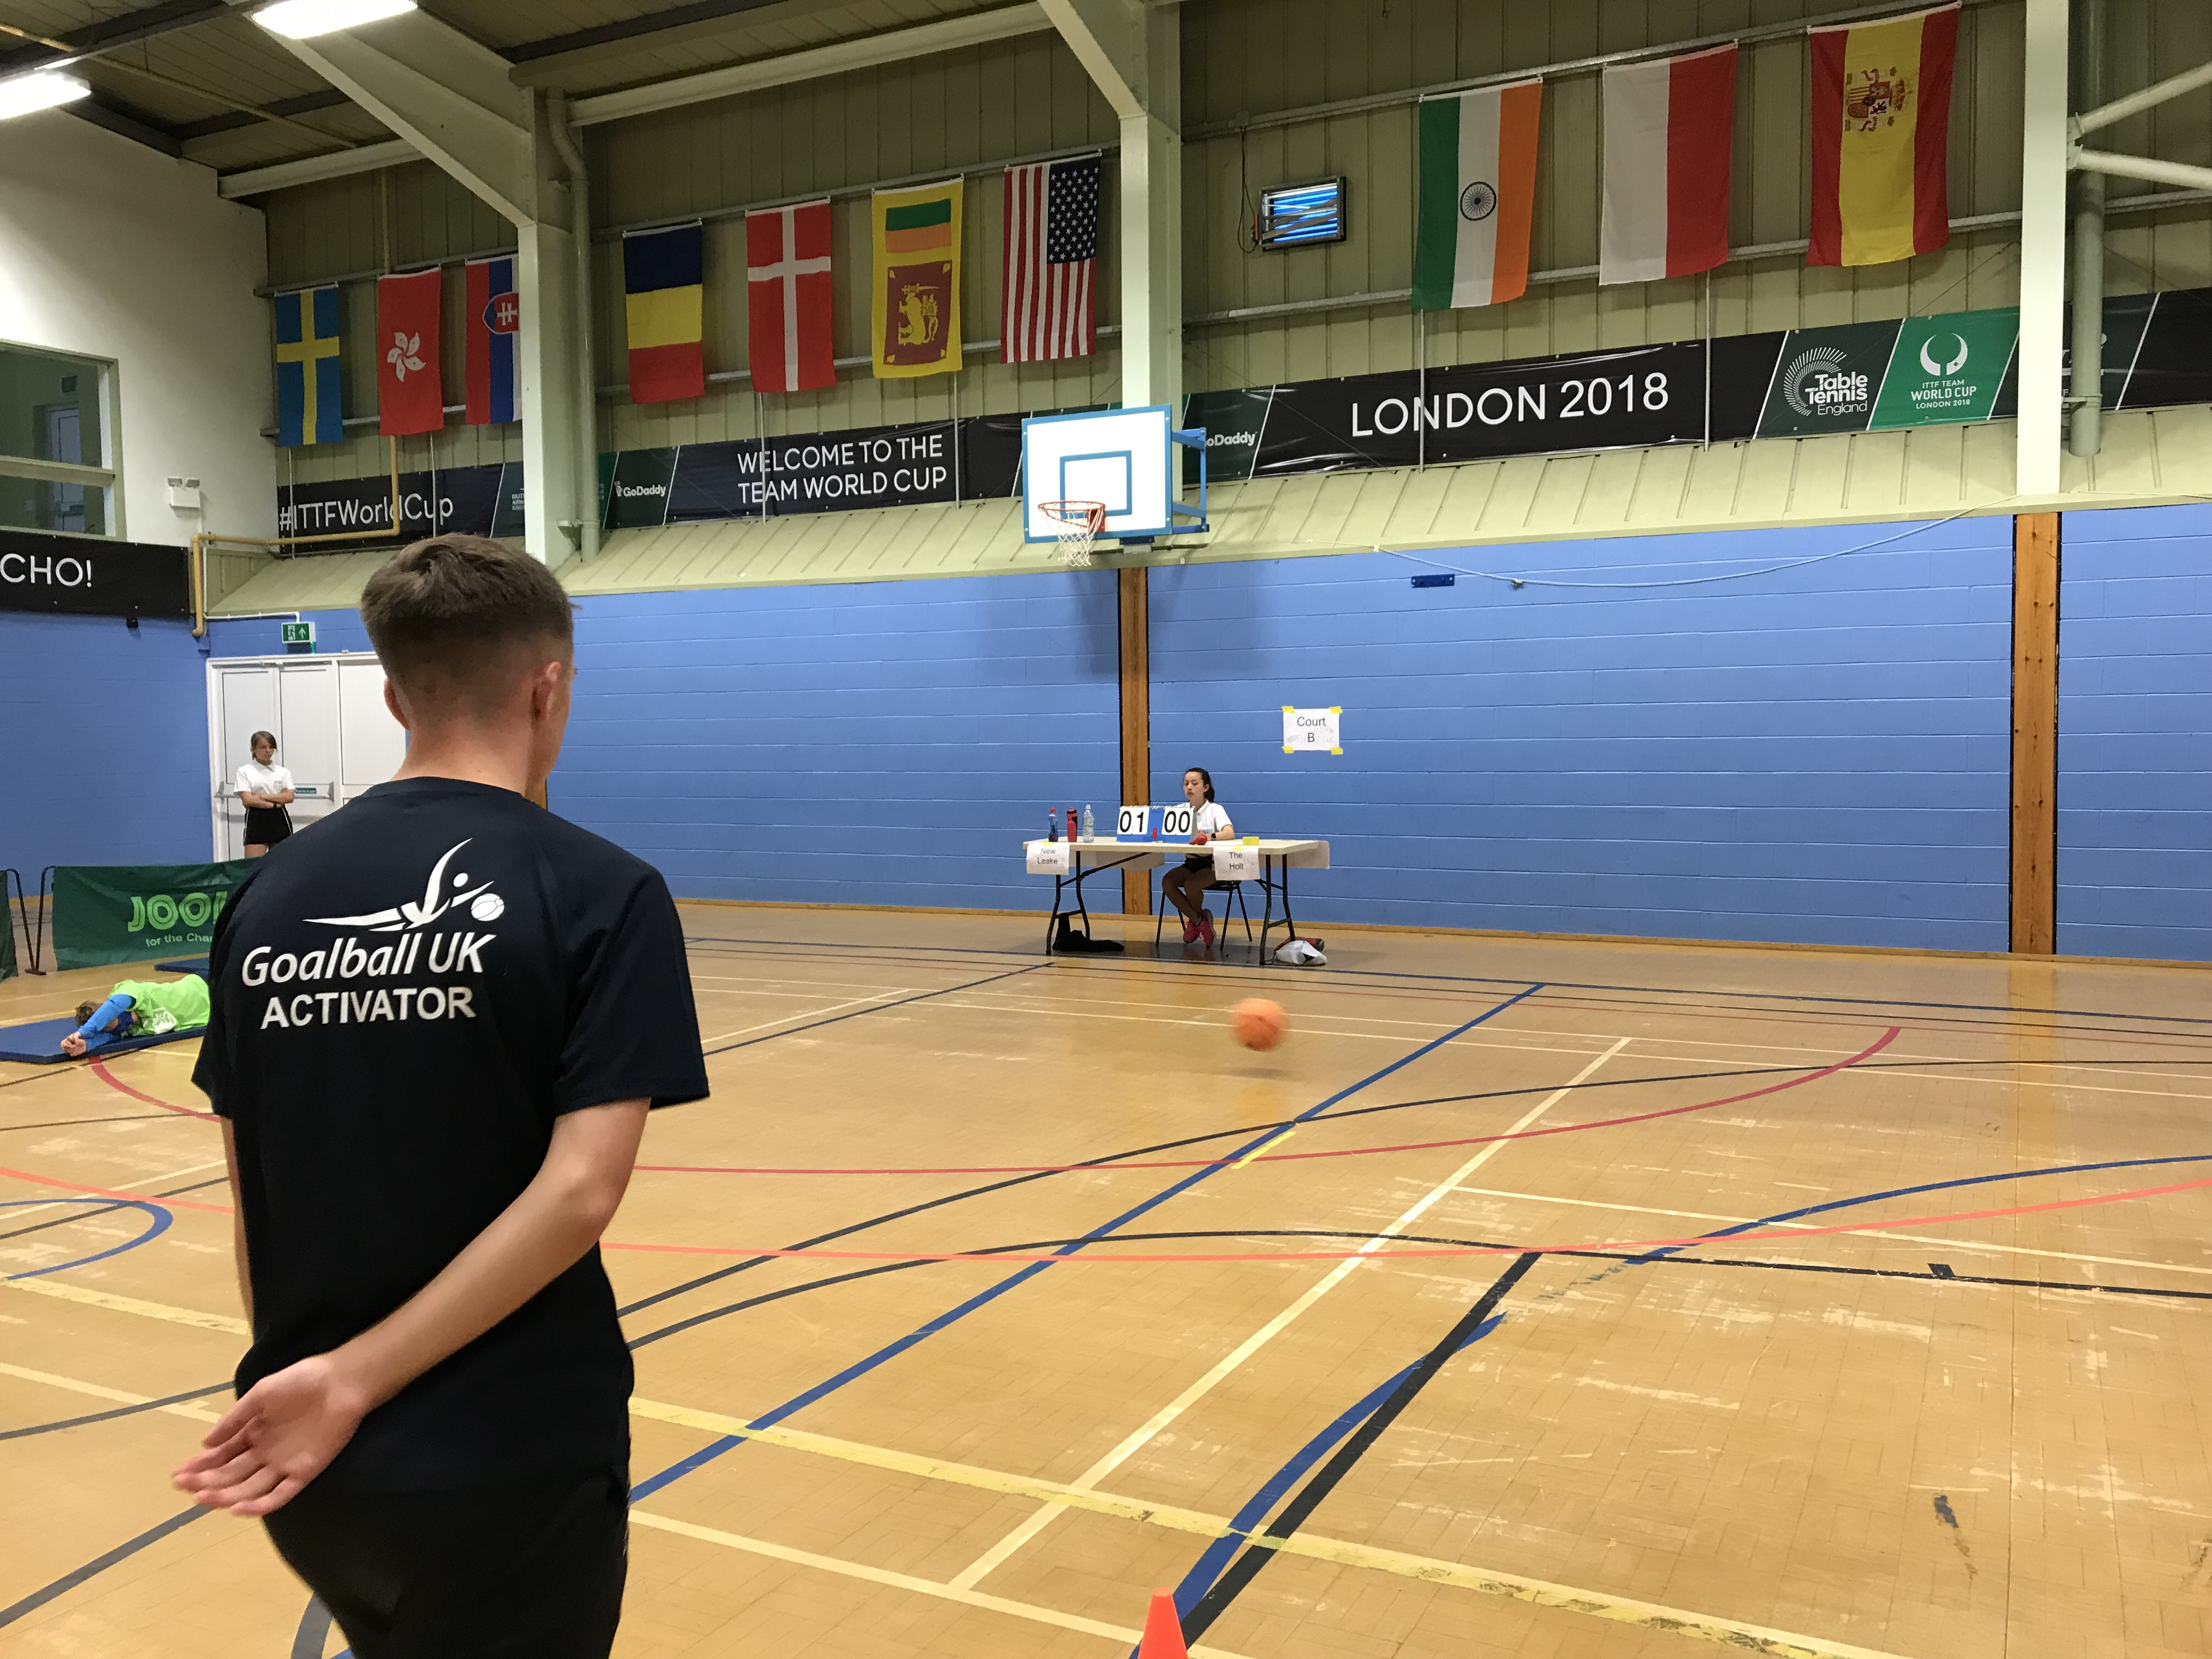 Action shot taken at Lincolnshire School Games, with Goalball UK Activator in foreground